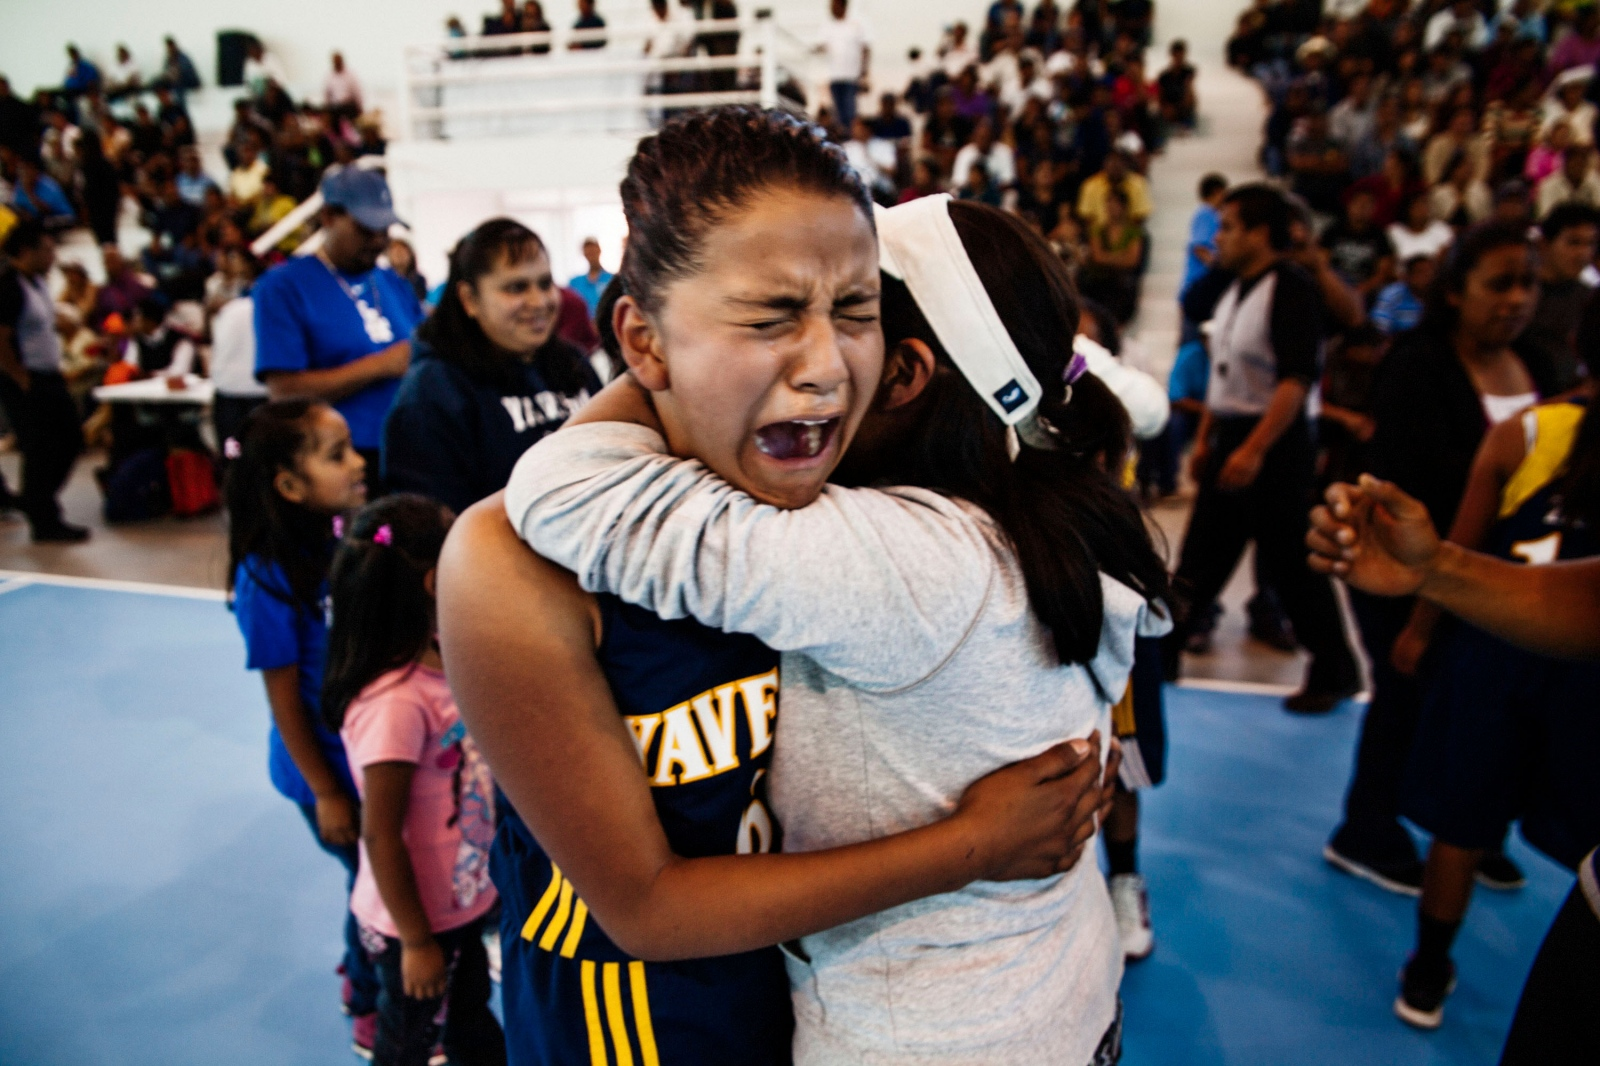 GUELATAO DE JUÁREZ, MARCH 21, 2013. Victoria, a player from the village of Yavesia, weeps with joy after winning the final game in her category.